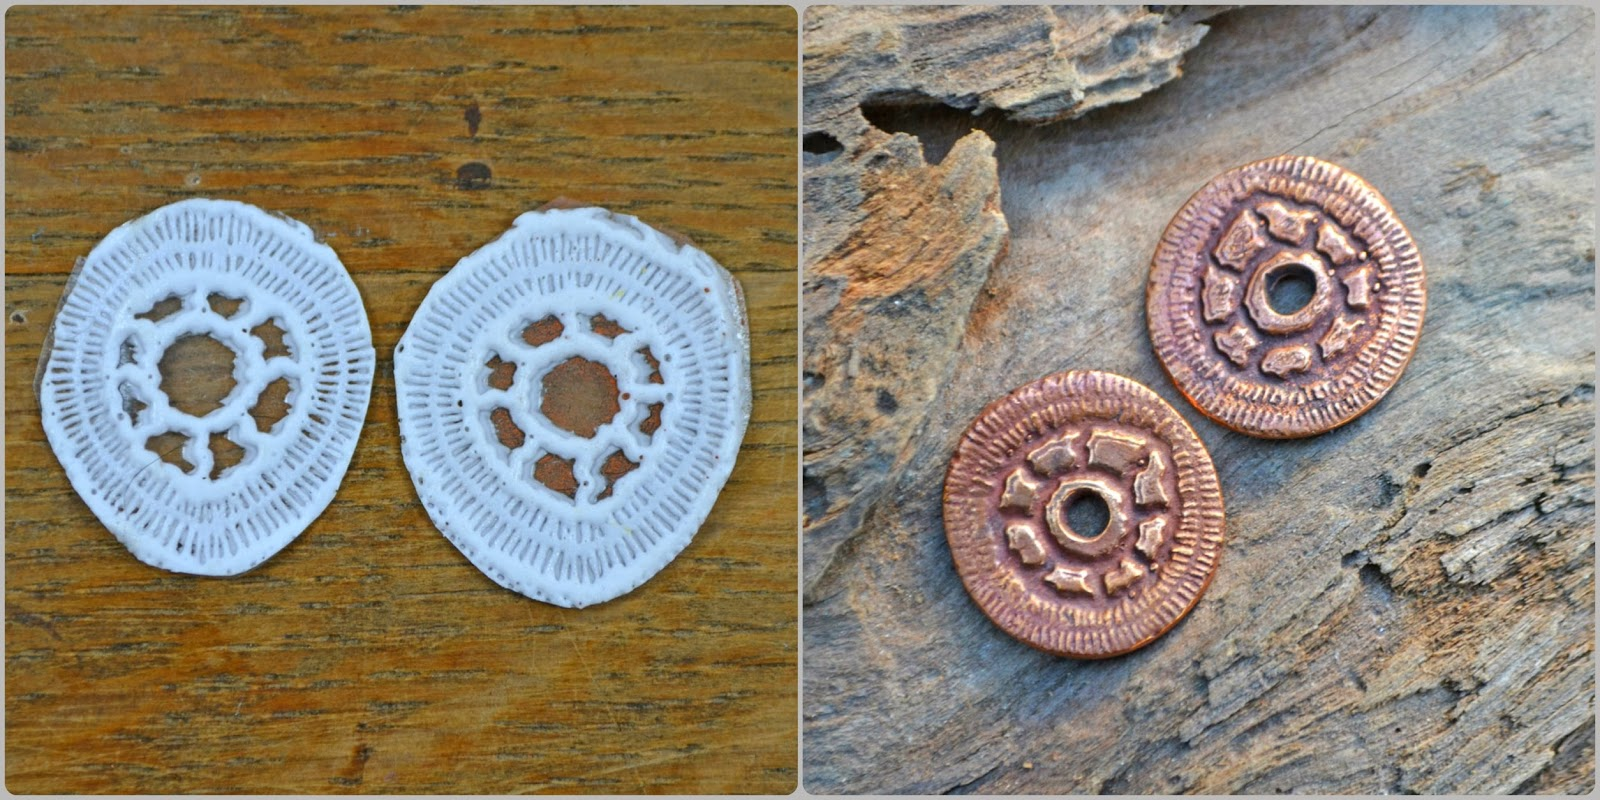 https://www.etsy.com/listing/177087073/copper-wagon-wheel-discs-1-pair-for?ref=shop_home_active_14